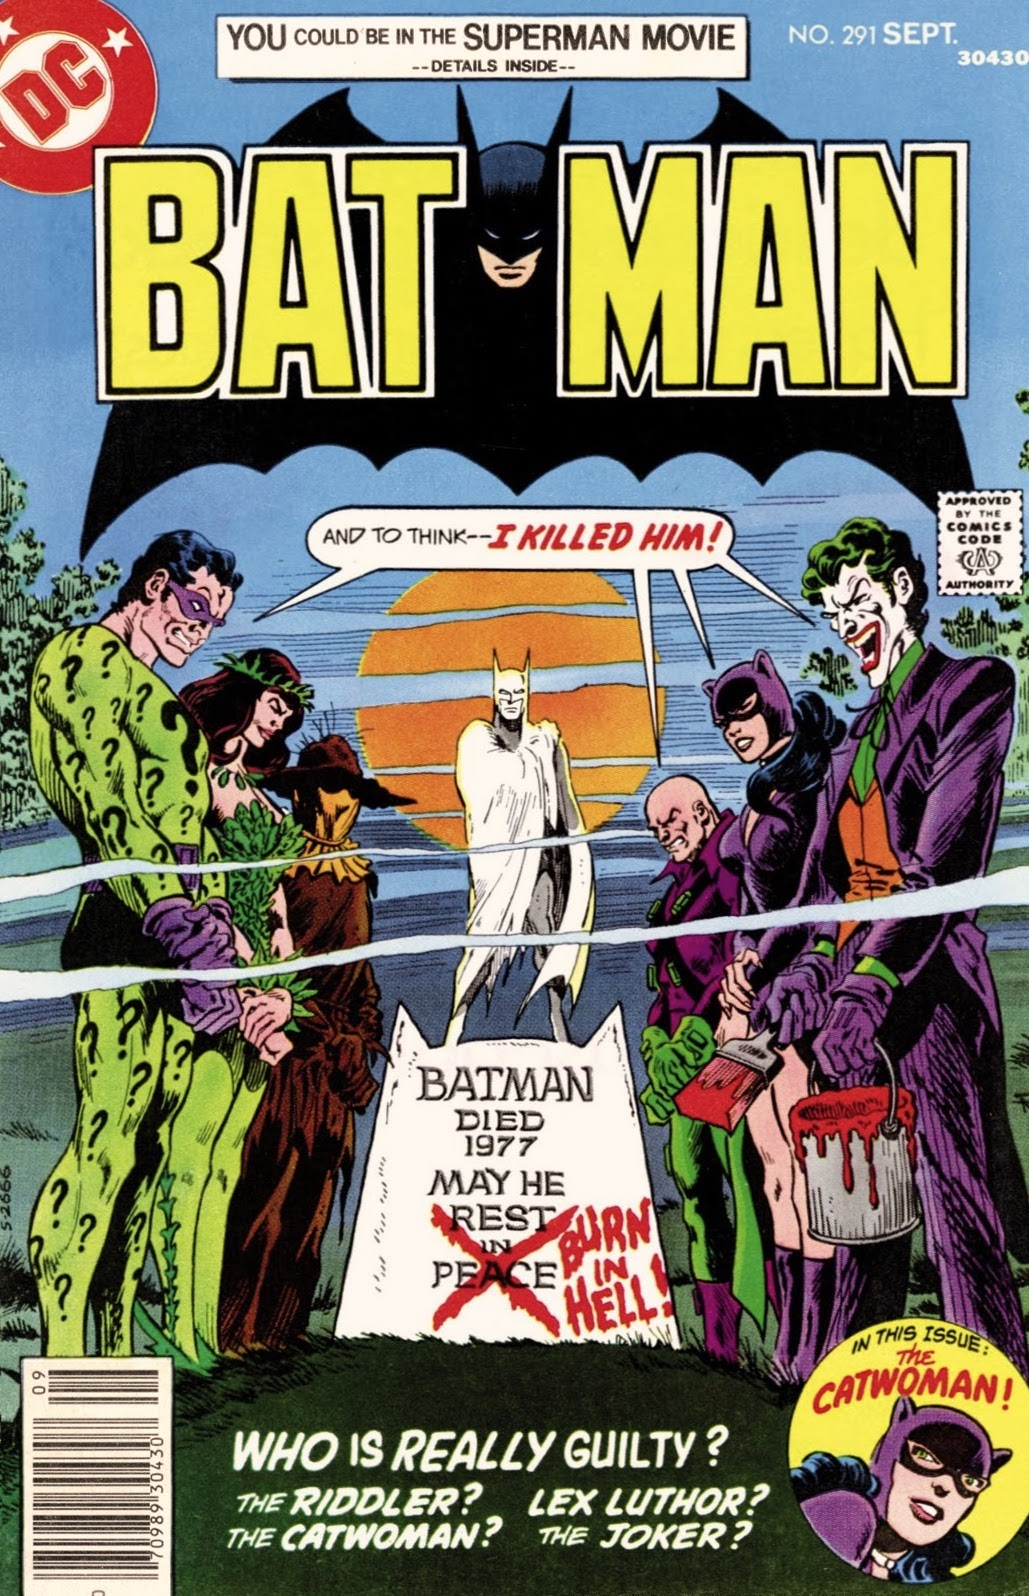 Riddler, Poison Ivy, Scarecrow, Lex Luthor, Catwoman, and Joker standing by monument of Batman all saying 'And to think -- I killed him!'